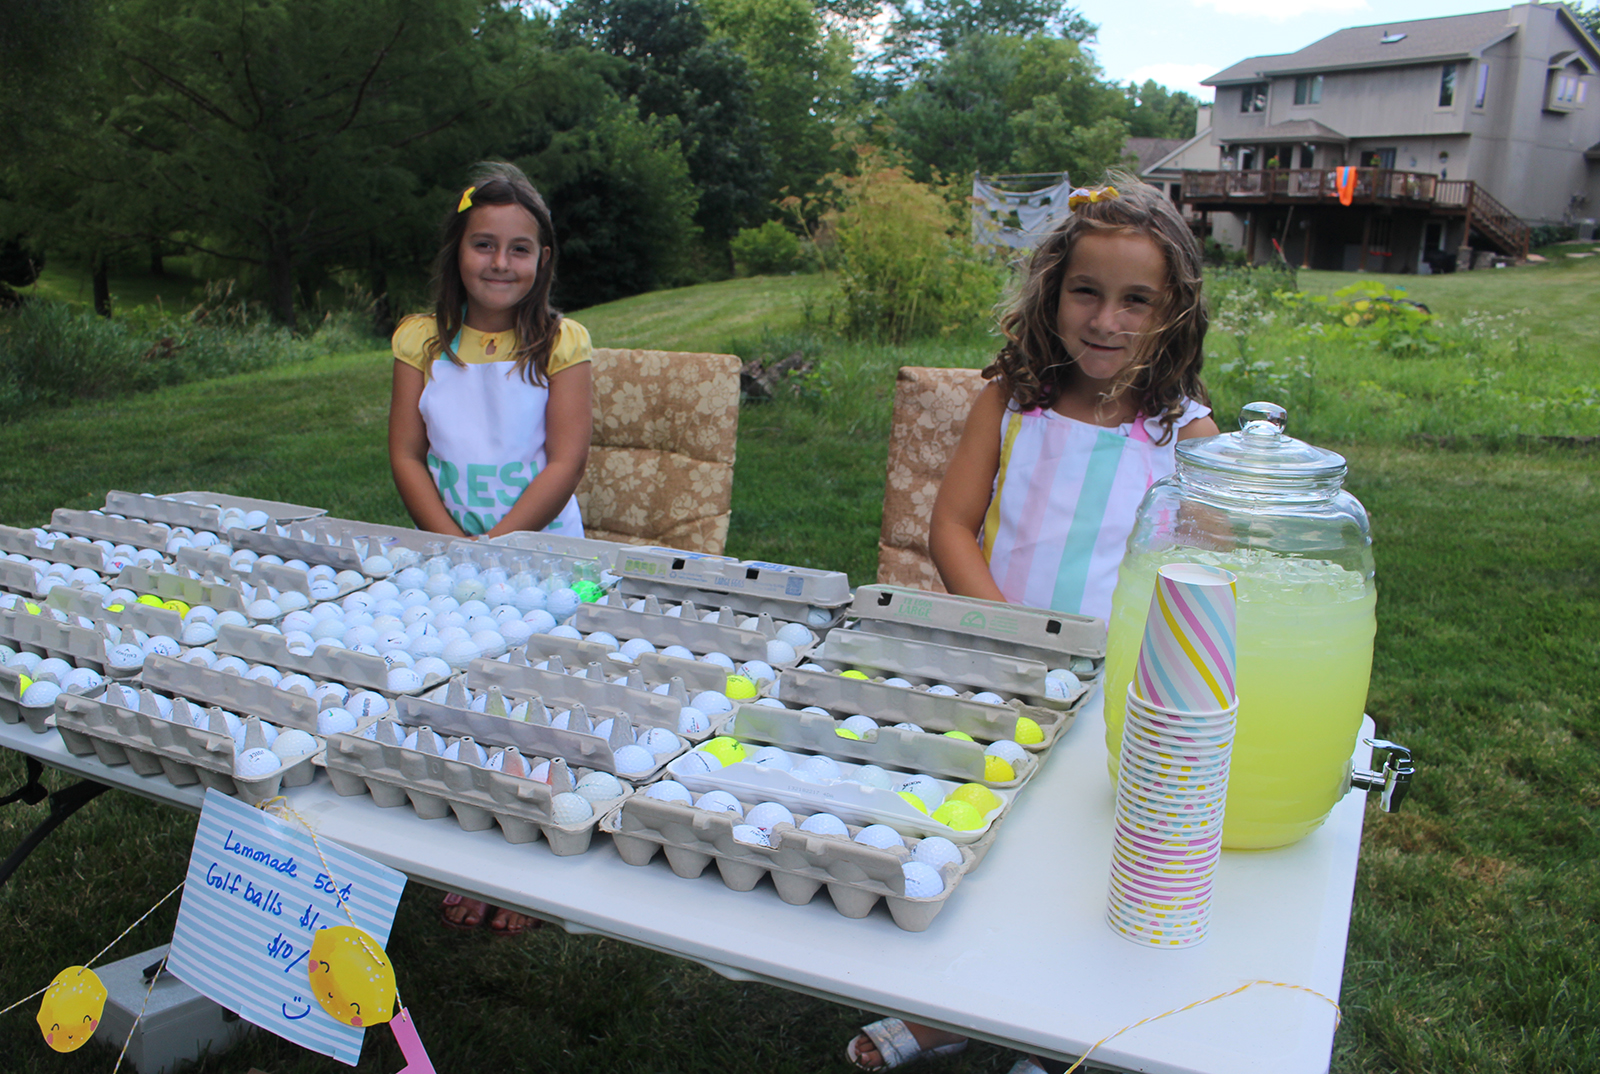 Hazel Wignall, left, and her twin sister Olive sell golf balls and lemonade from a stand in their back yard, which abuts Champions Run, on Monday during the Omaha Bar Association Field Day. (Photo by Scott Stewart)